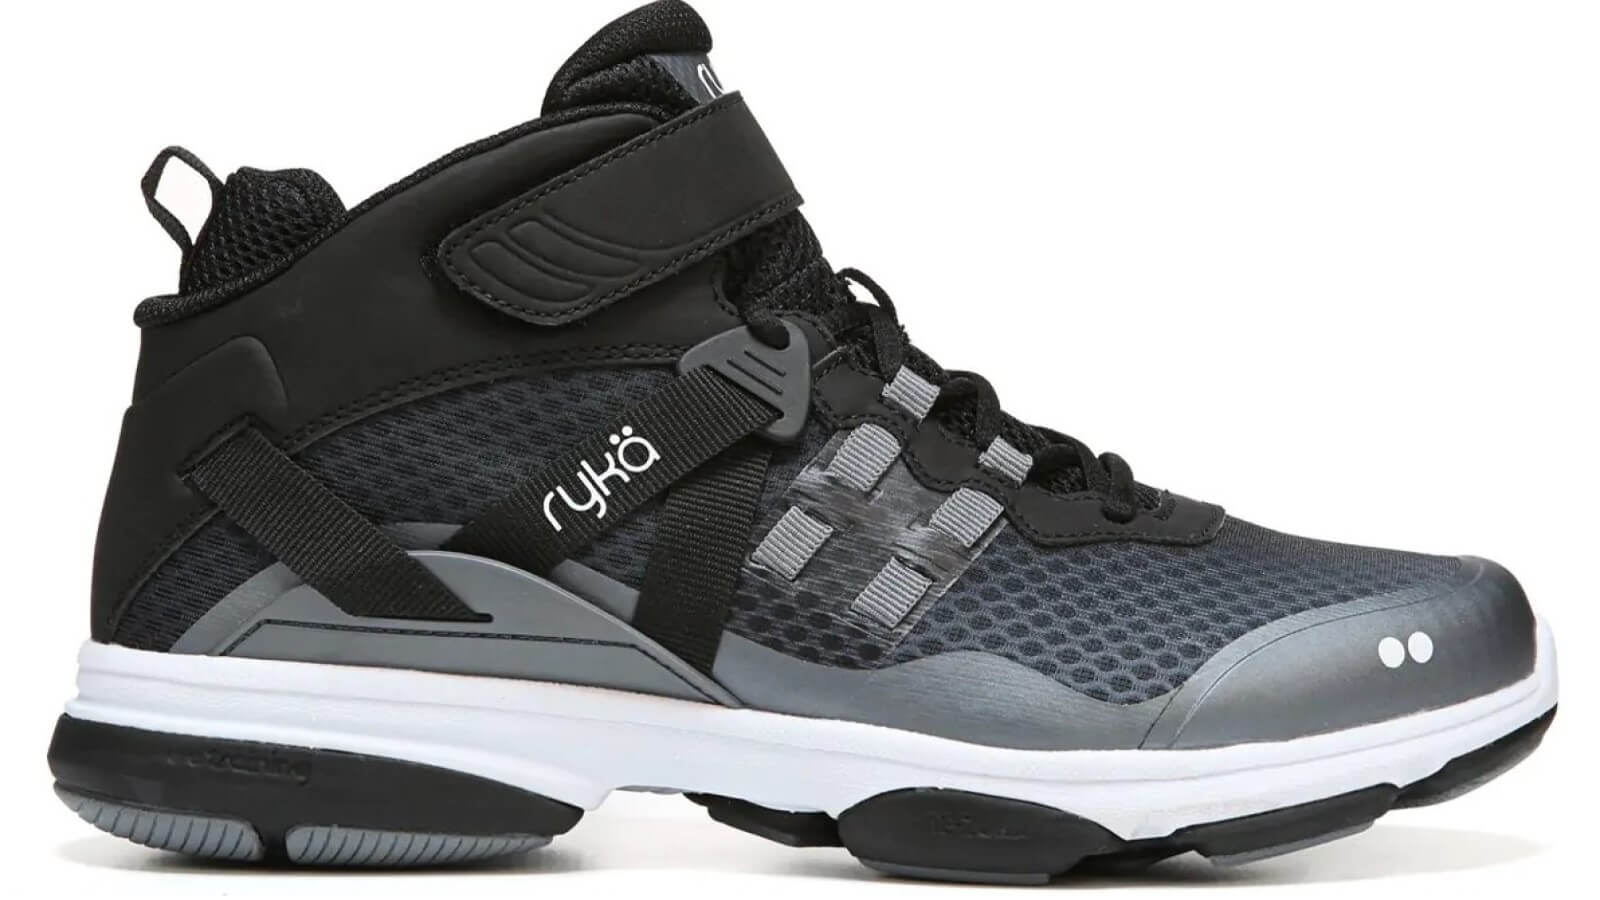 Profile of the Ryka Devotion XT High Top Shoe for classes in Zumba or HIIT